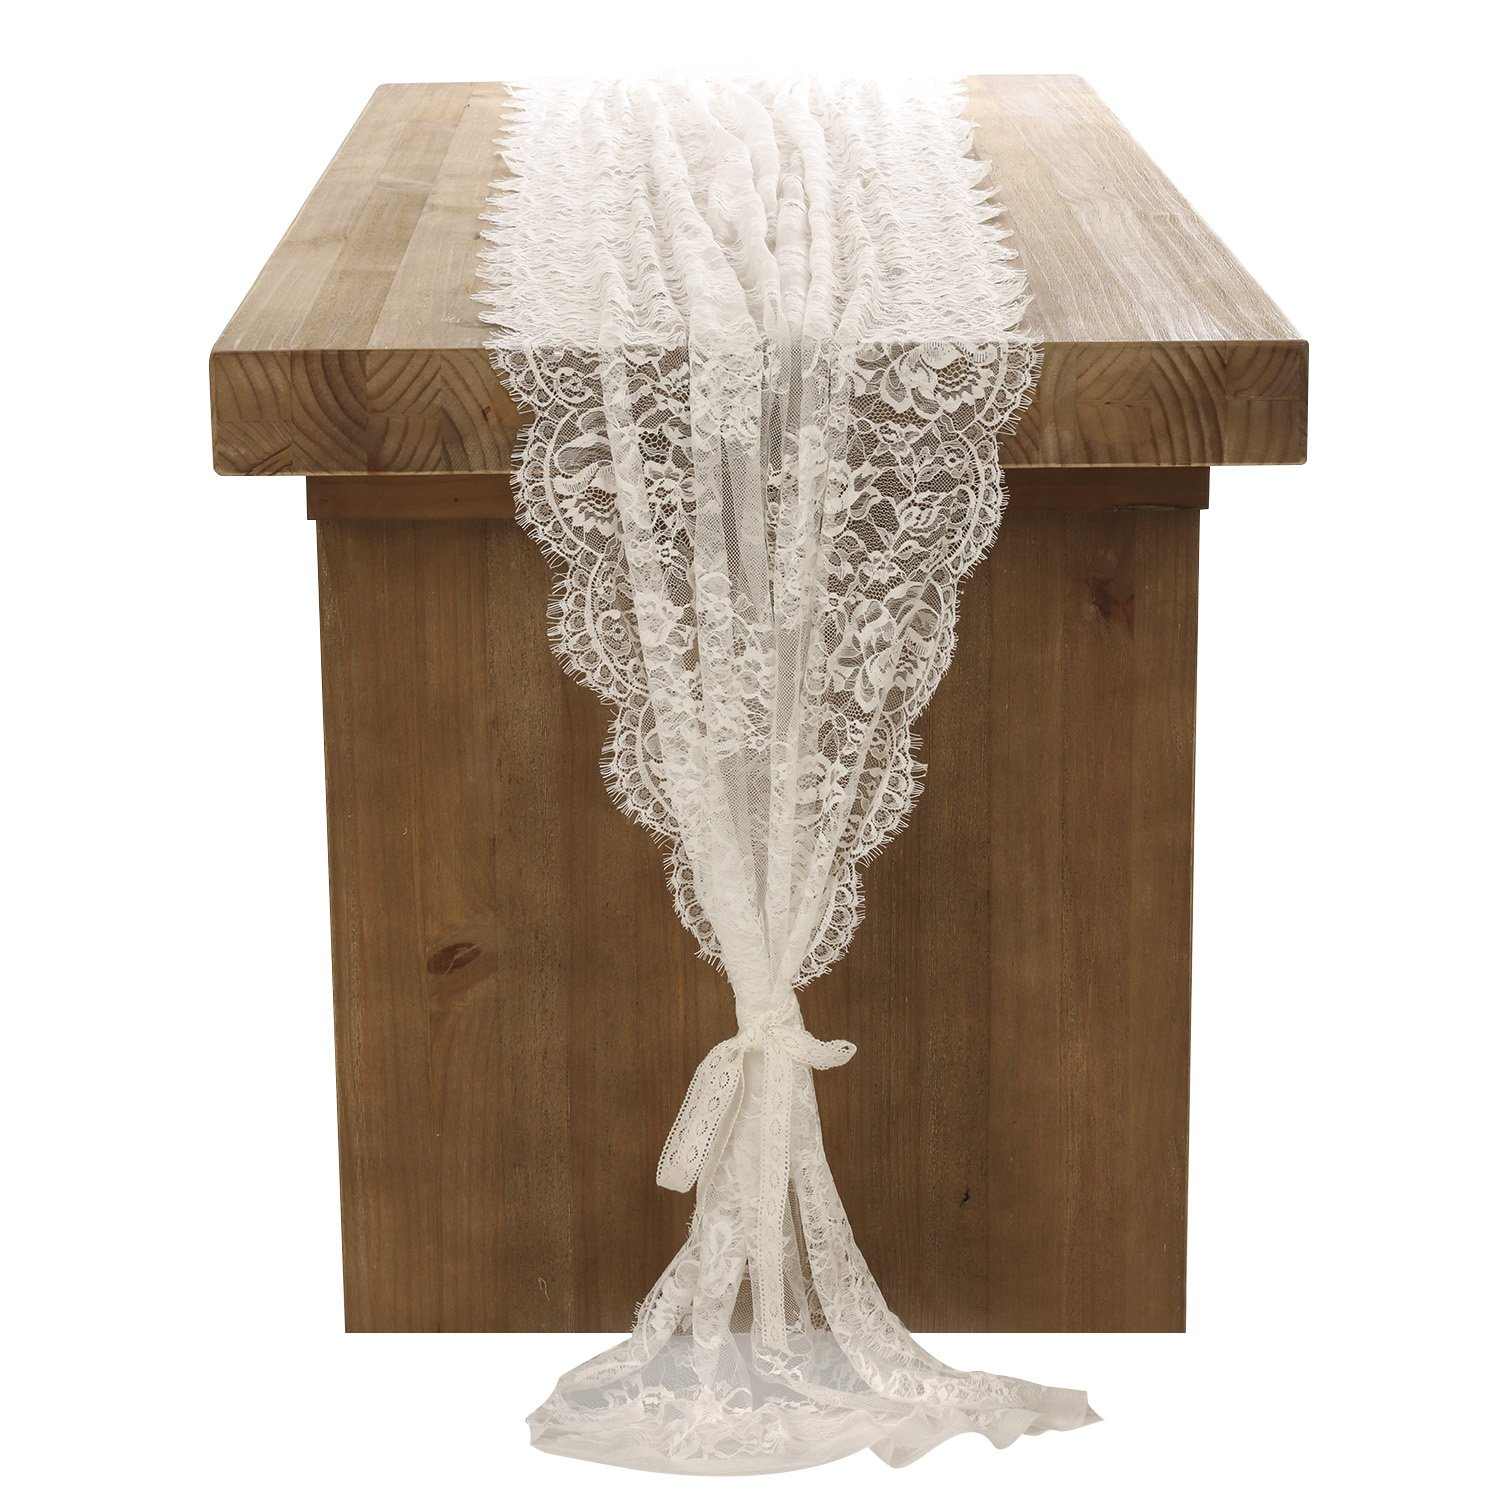 Floral bridal shower table decorations amazon lings moment 32x120 inches white lace table runneroverlay rustic chic wedding reception table decor junglespirit Gallery